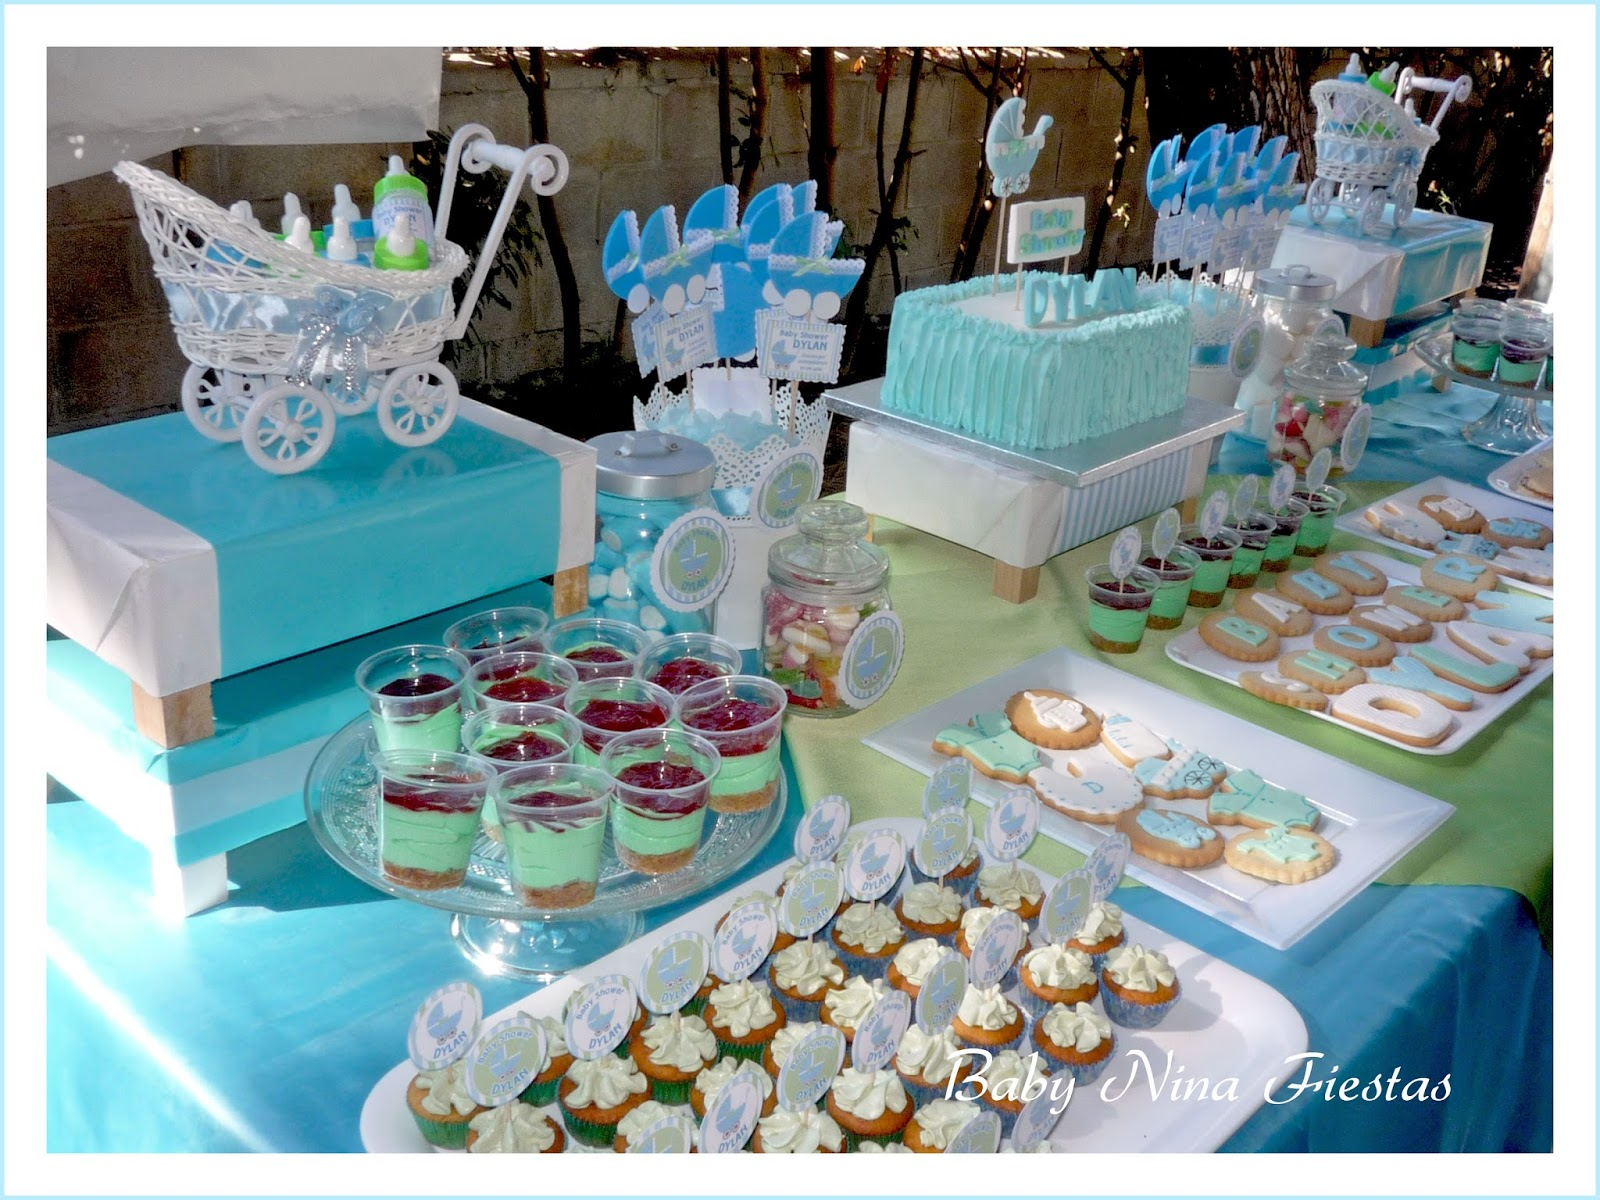 Baby nina fiestas baby shower dylan for Mesa de dulces para baby shower nino